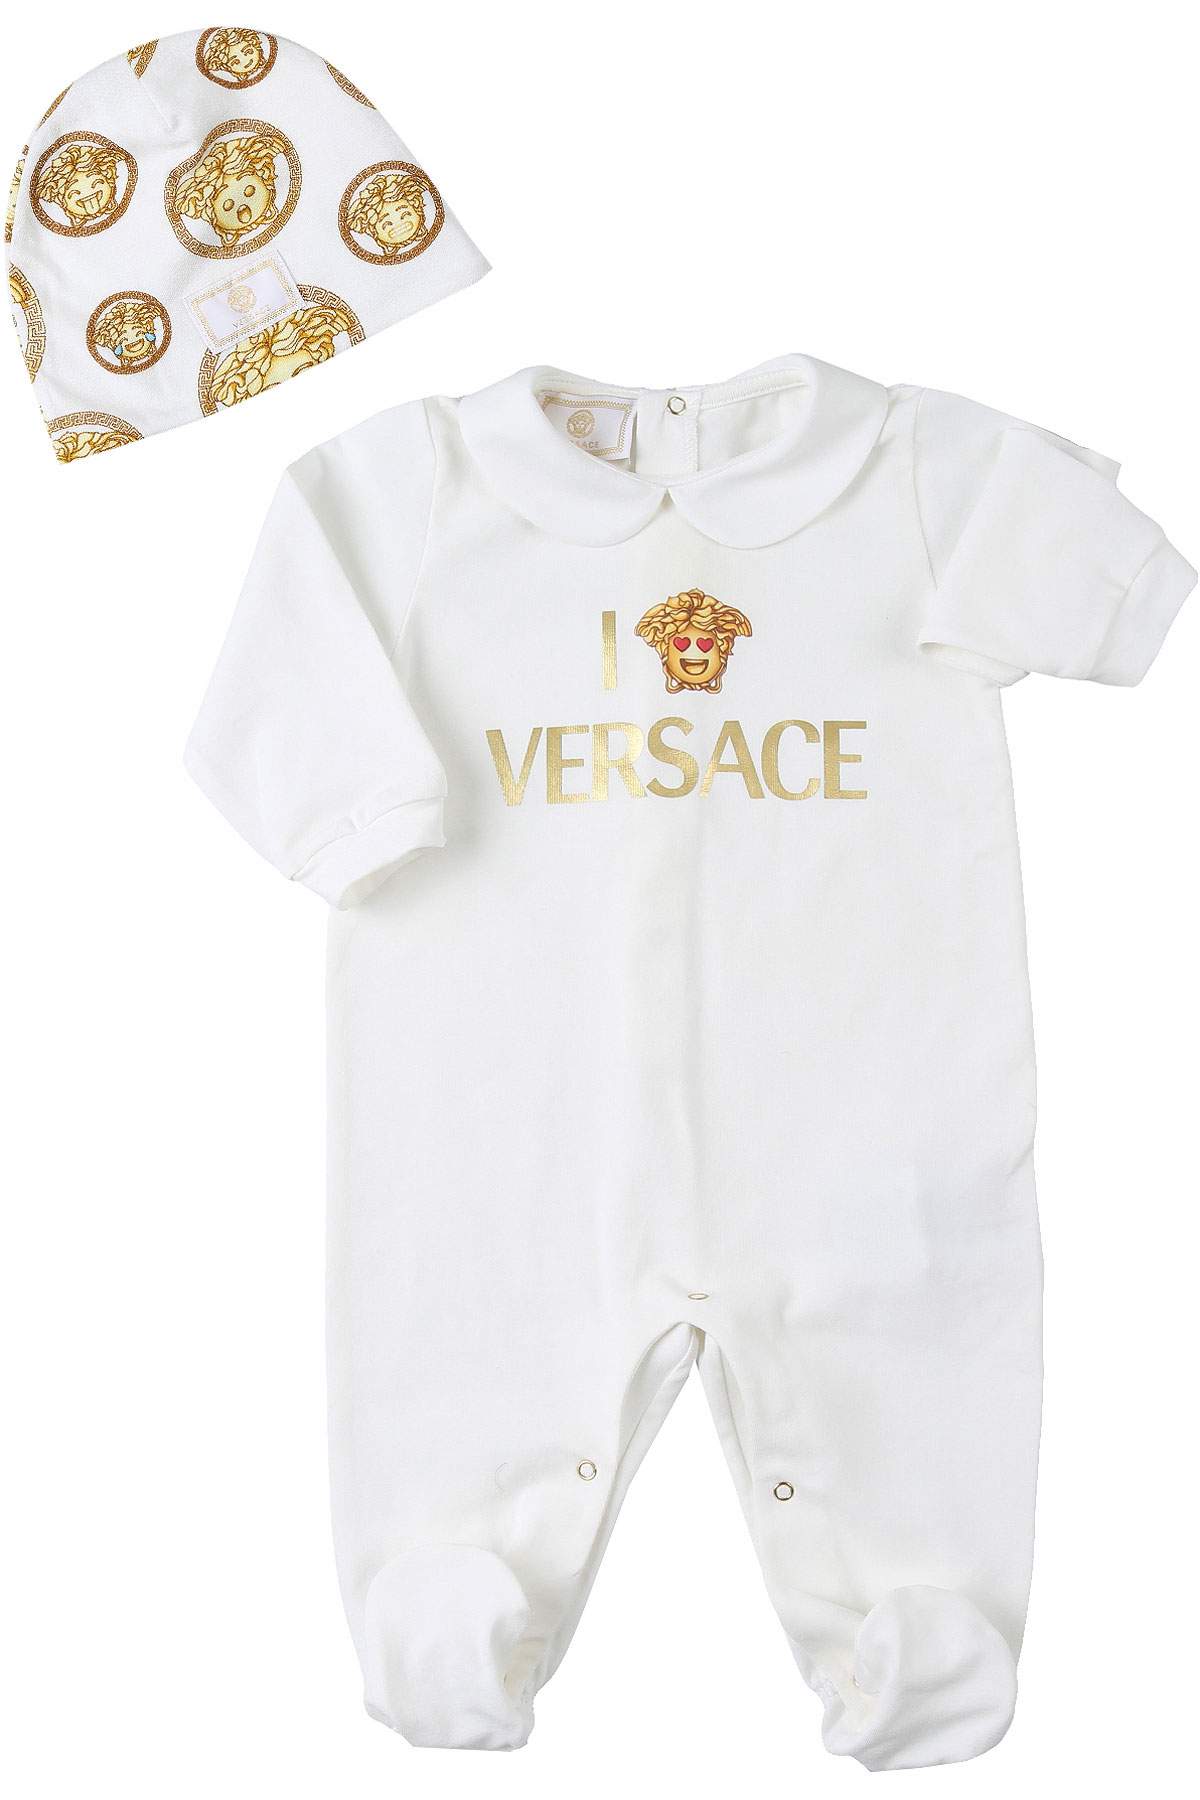 Versace Baby Sets for Boys On Sale, White, Cotton, 2019, 3M 6M